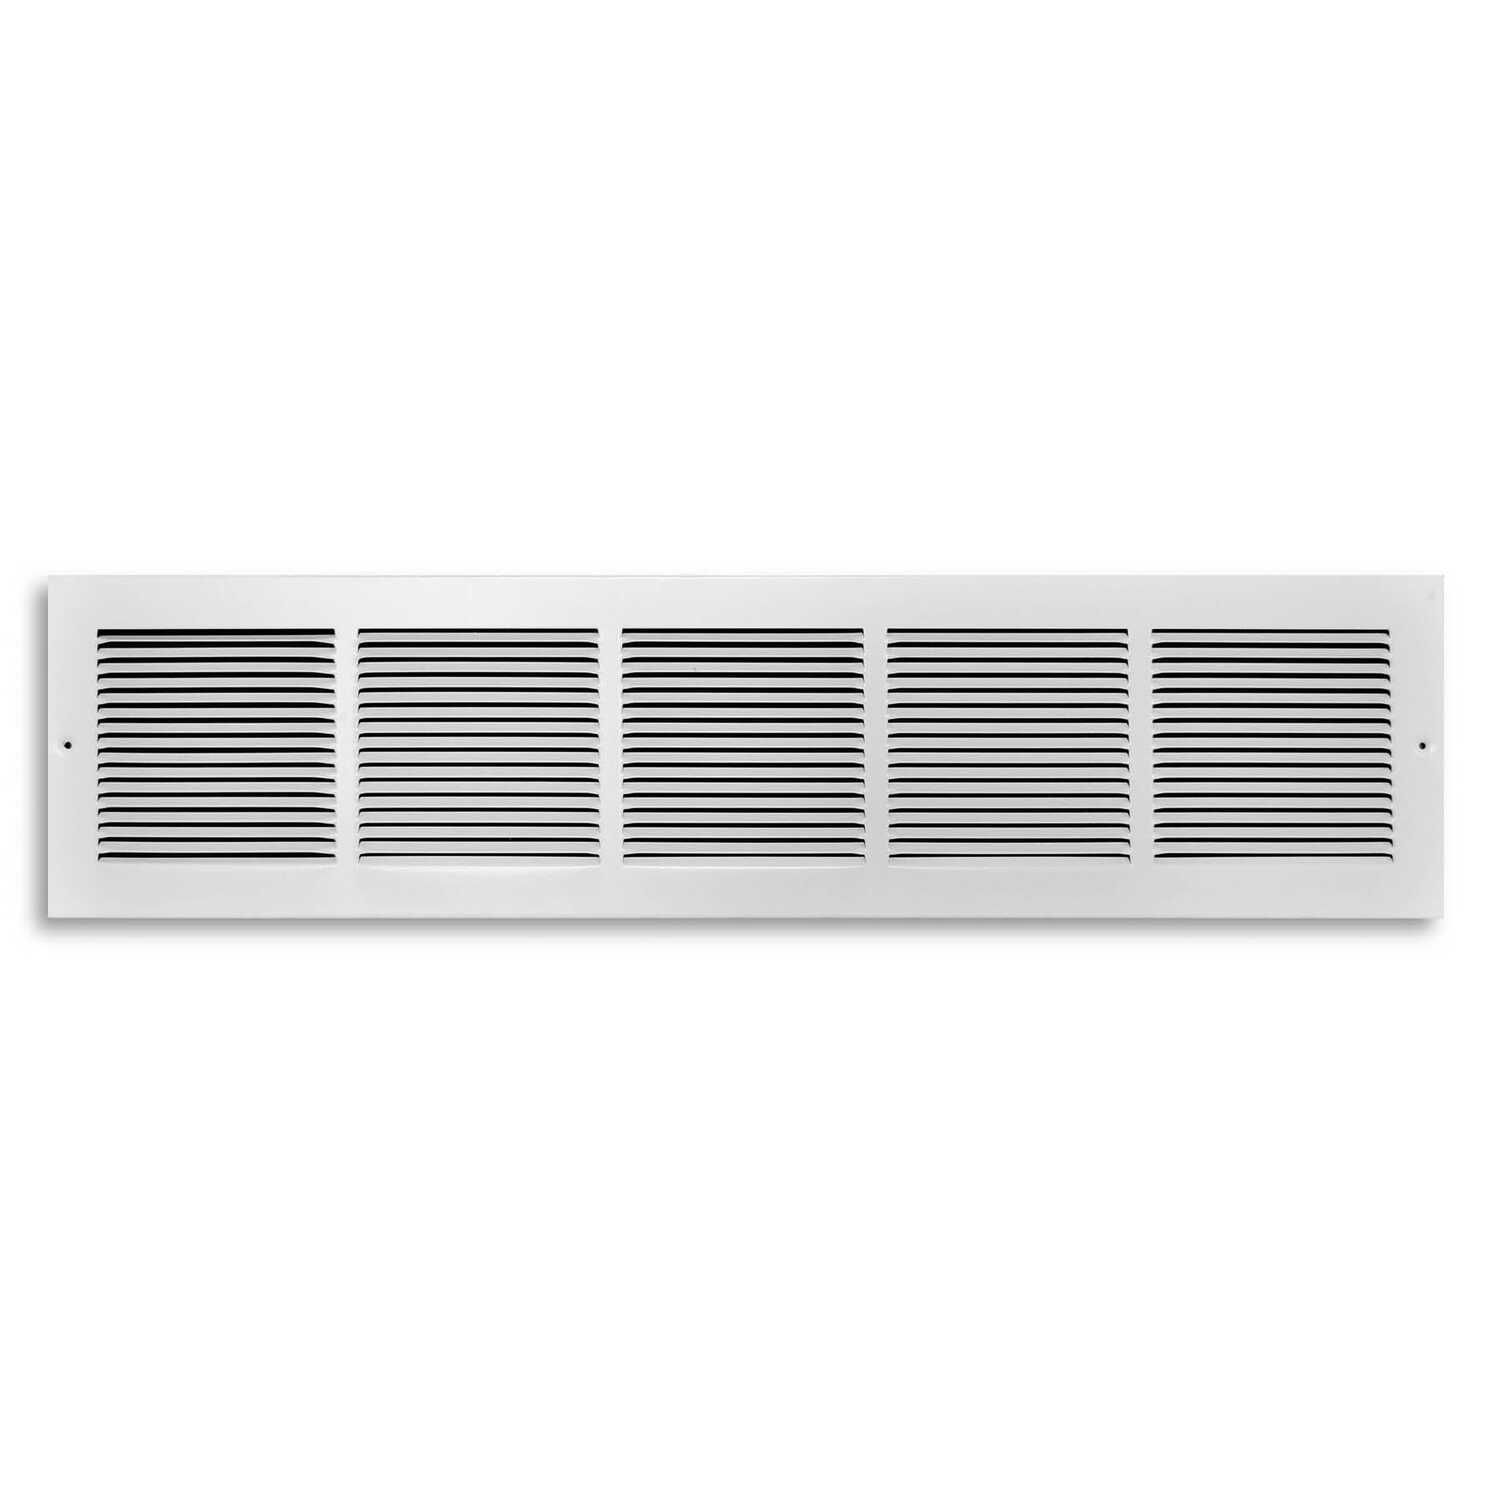 Tru Aire  6 in. H x 30 in. W 1-Way  Powder Coat  White  Steel  Baseboard Return Grille